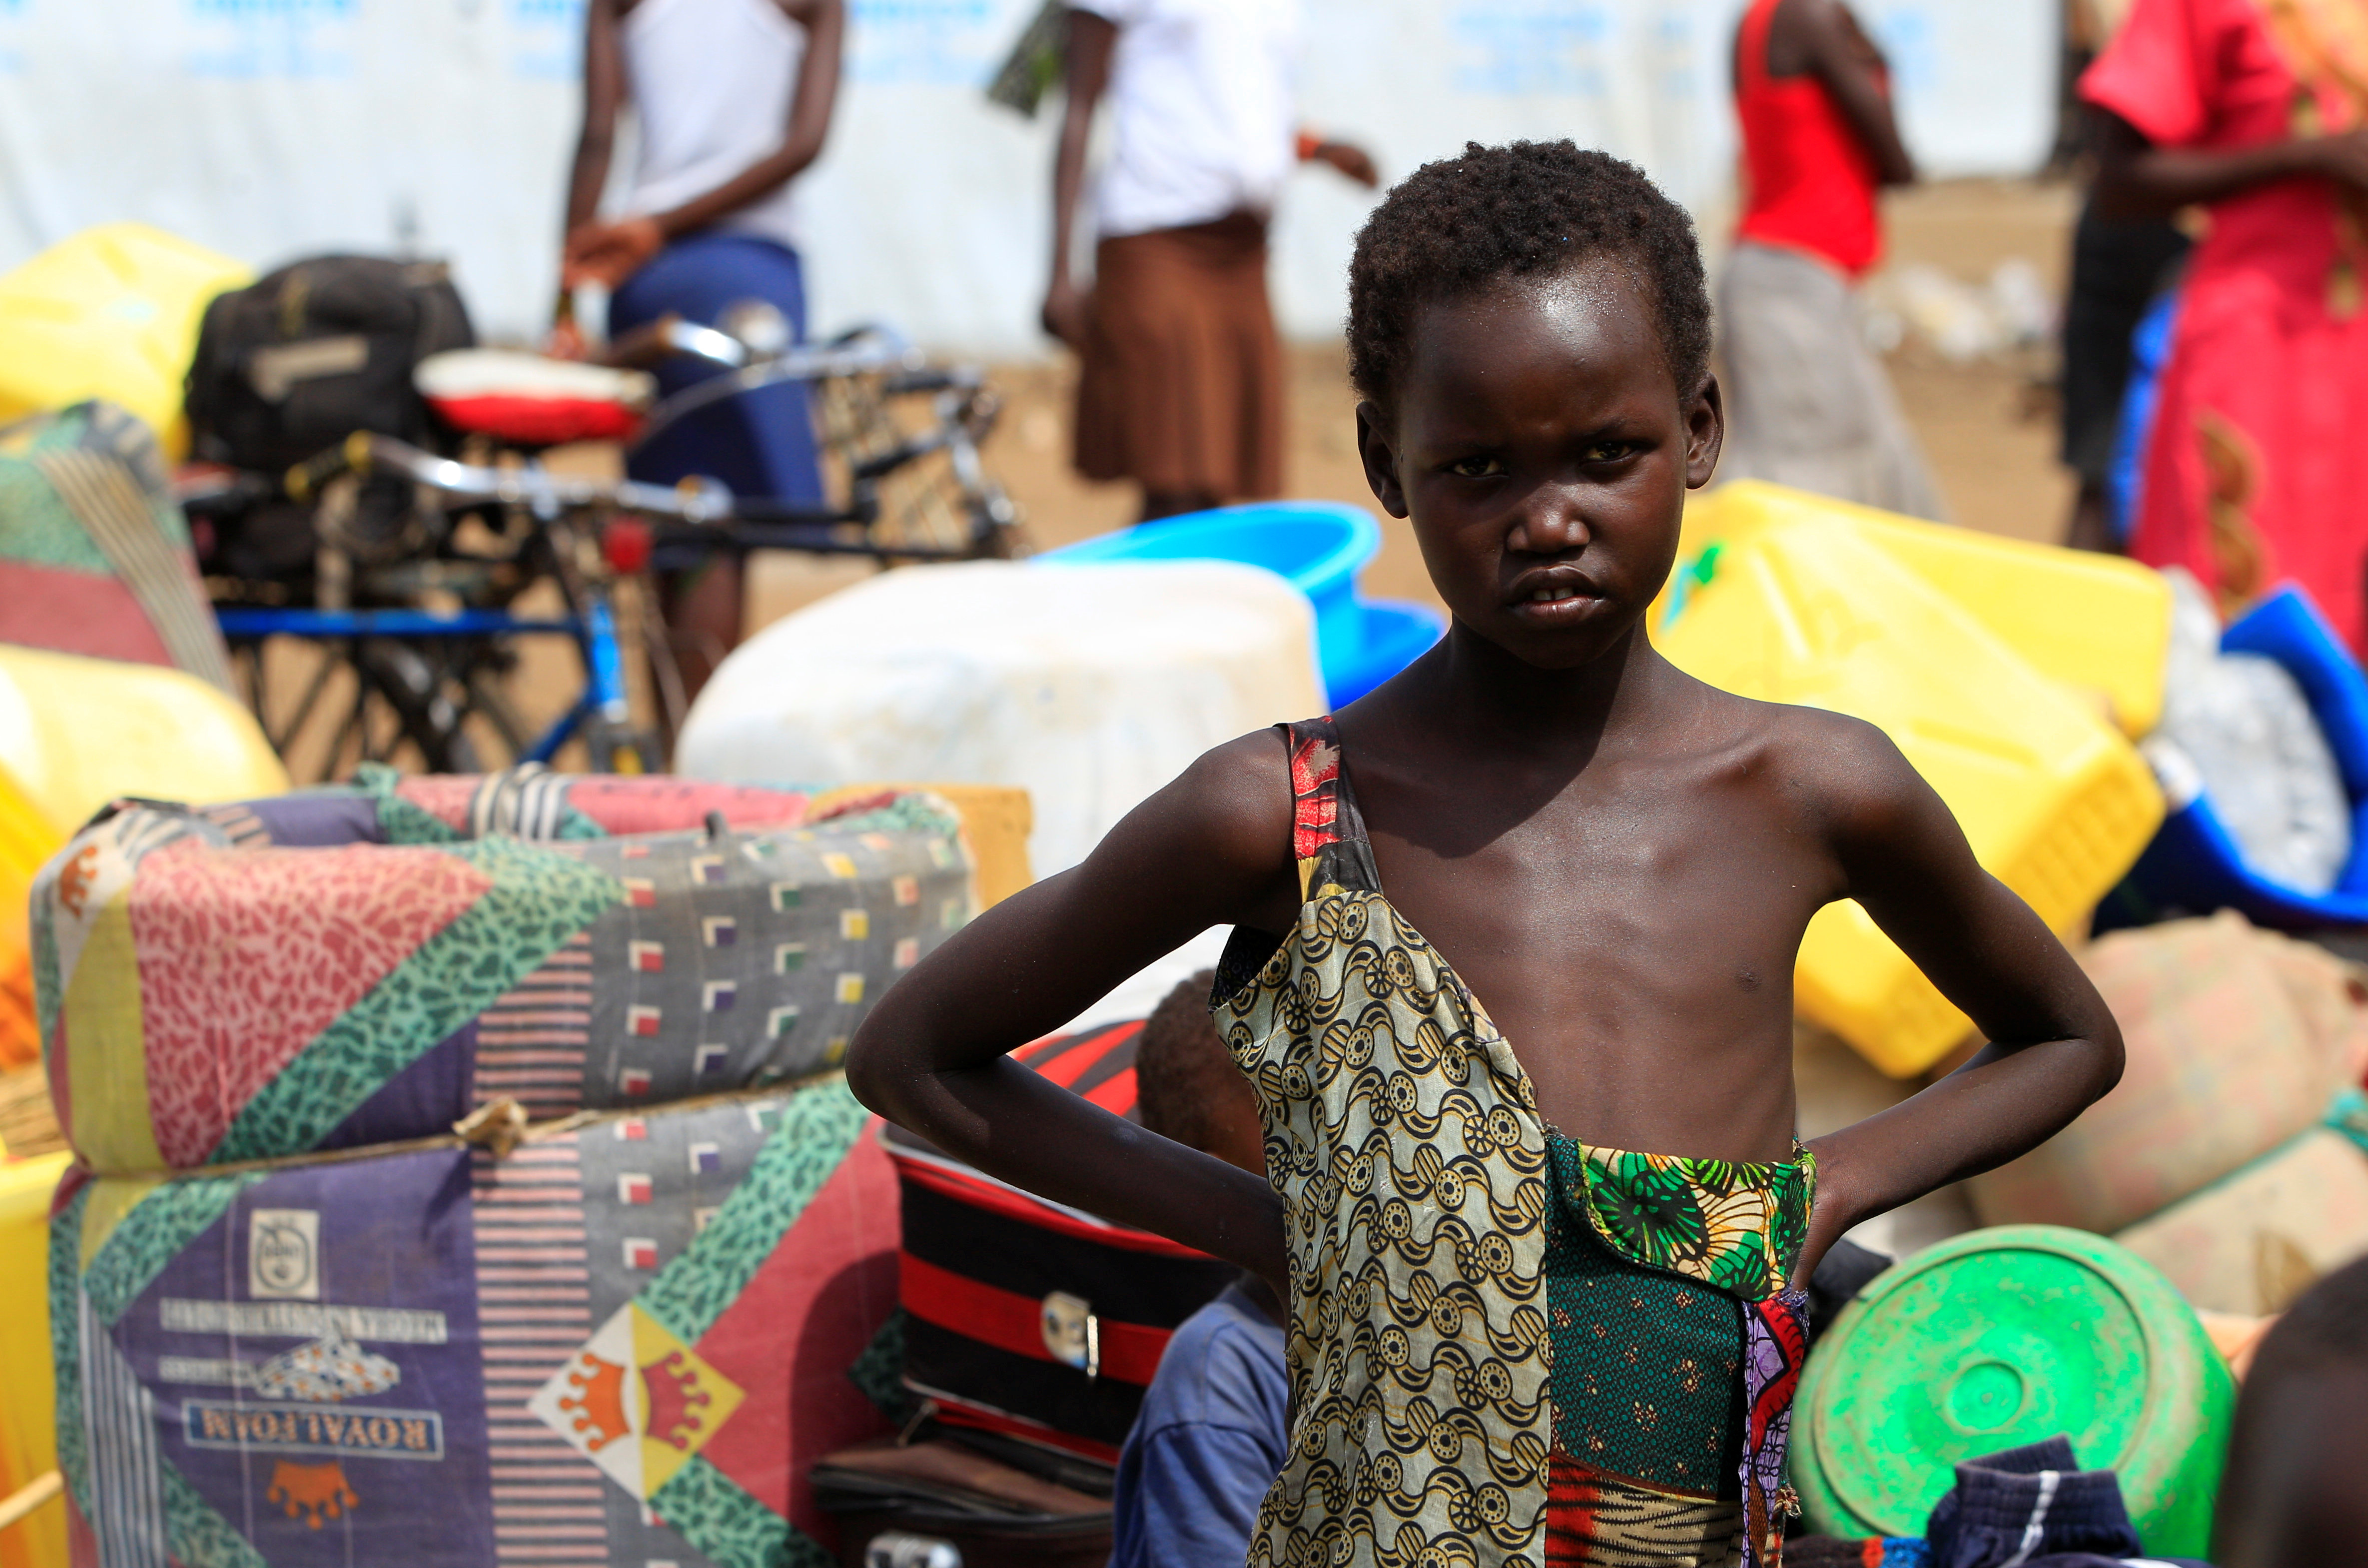 South Sudanese refugee girl displaced by fighting, arrives at Imvepi settlement in Arua district, northern Uganda, April 4, 2017. Picture taken April 4, 2017. REUTERS/James Akena - RTX3545L